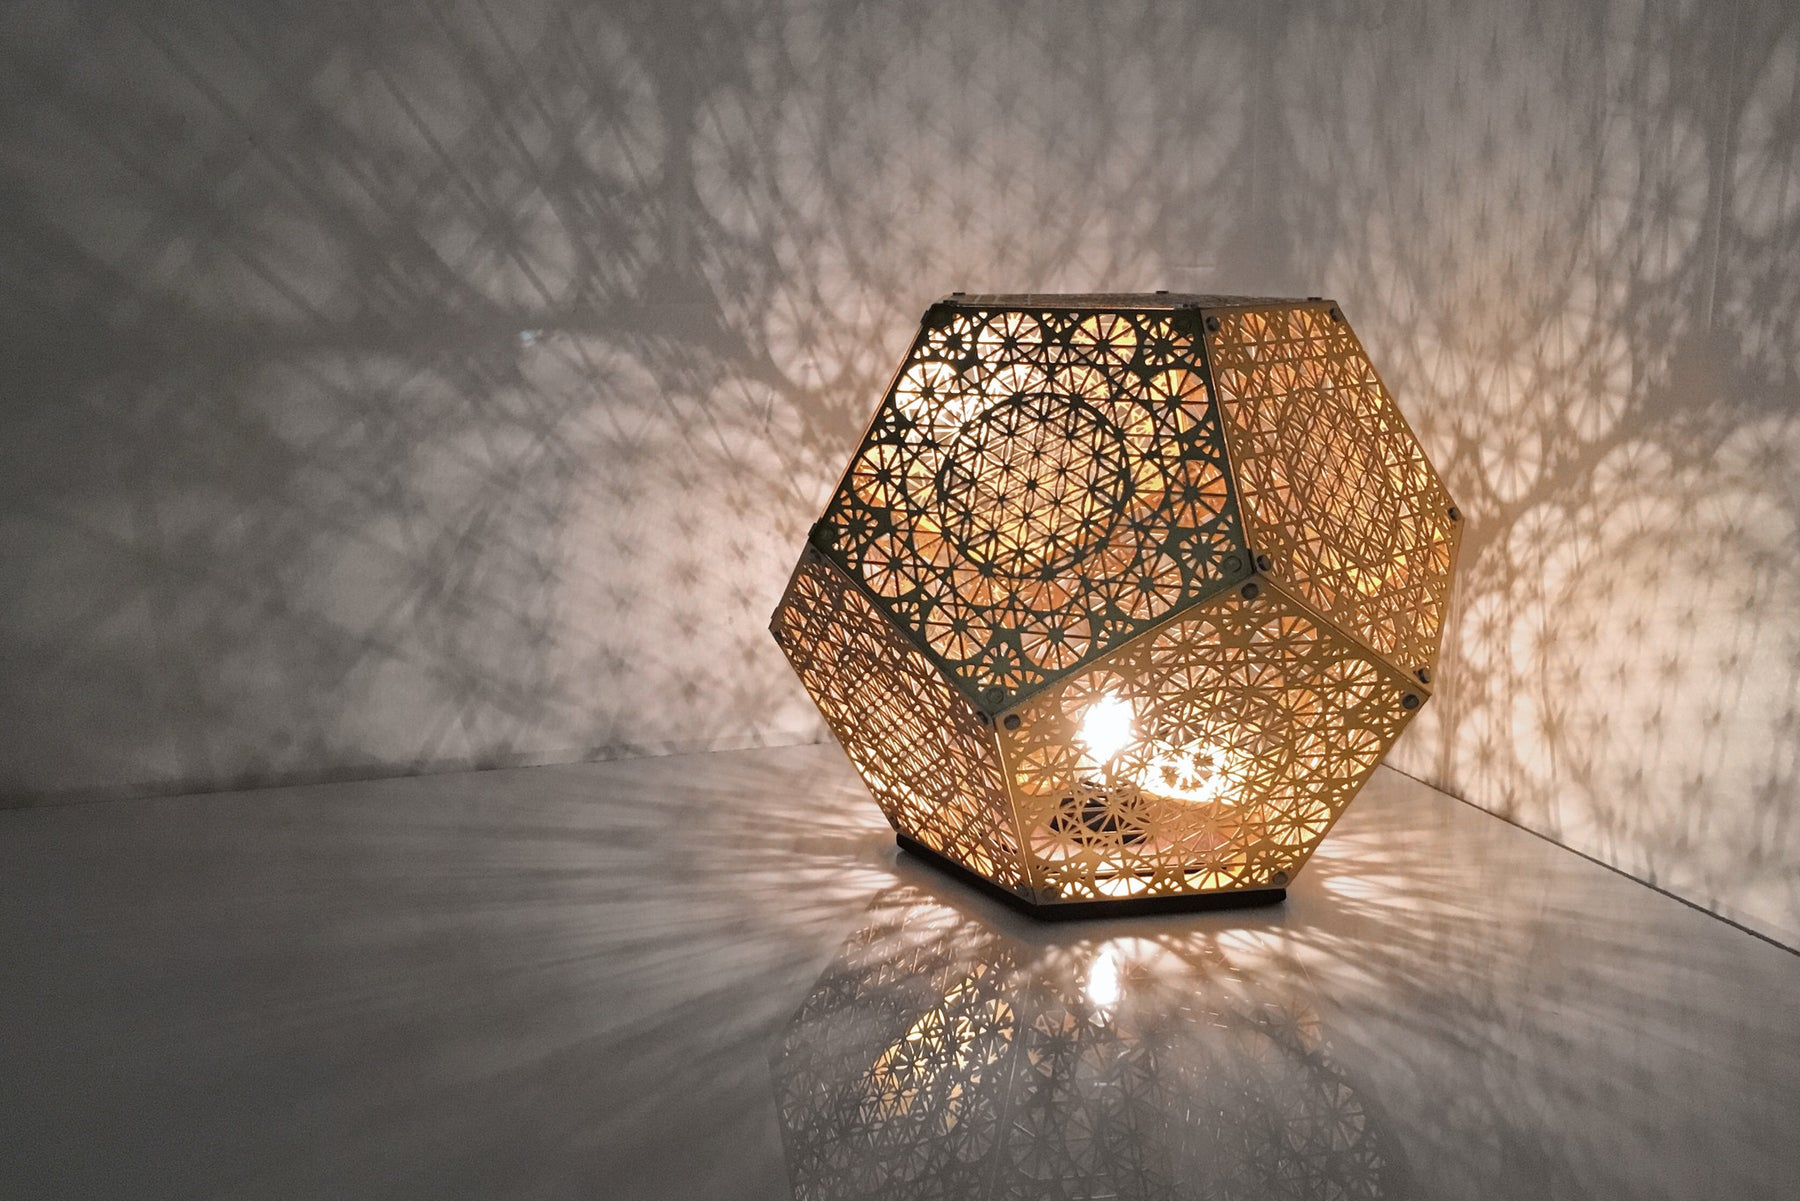 Shadow Lamps Pre Order Hybycozo Dodecahedron Table Light